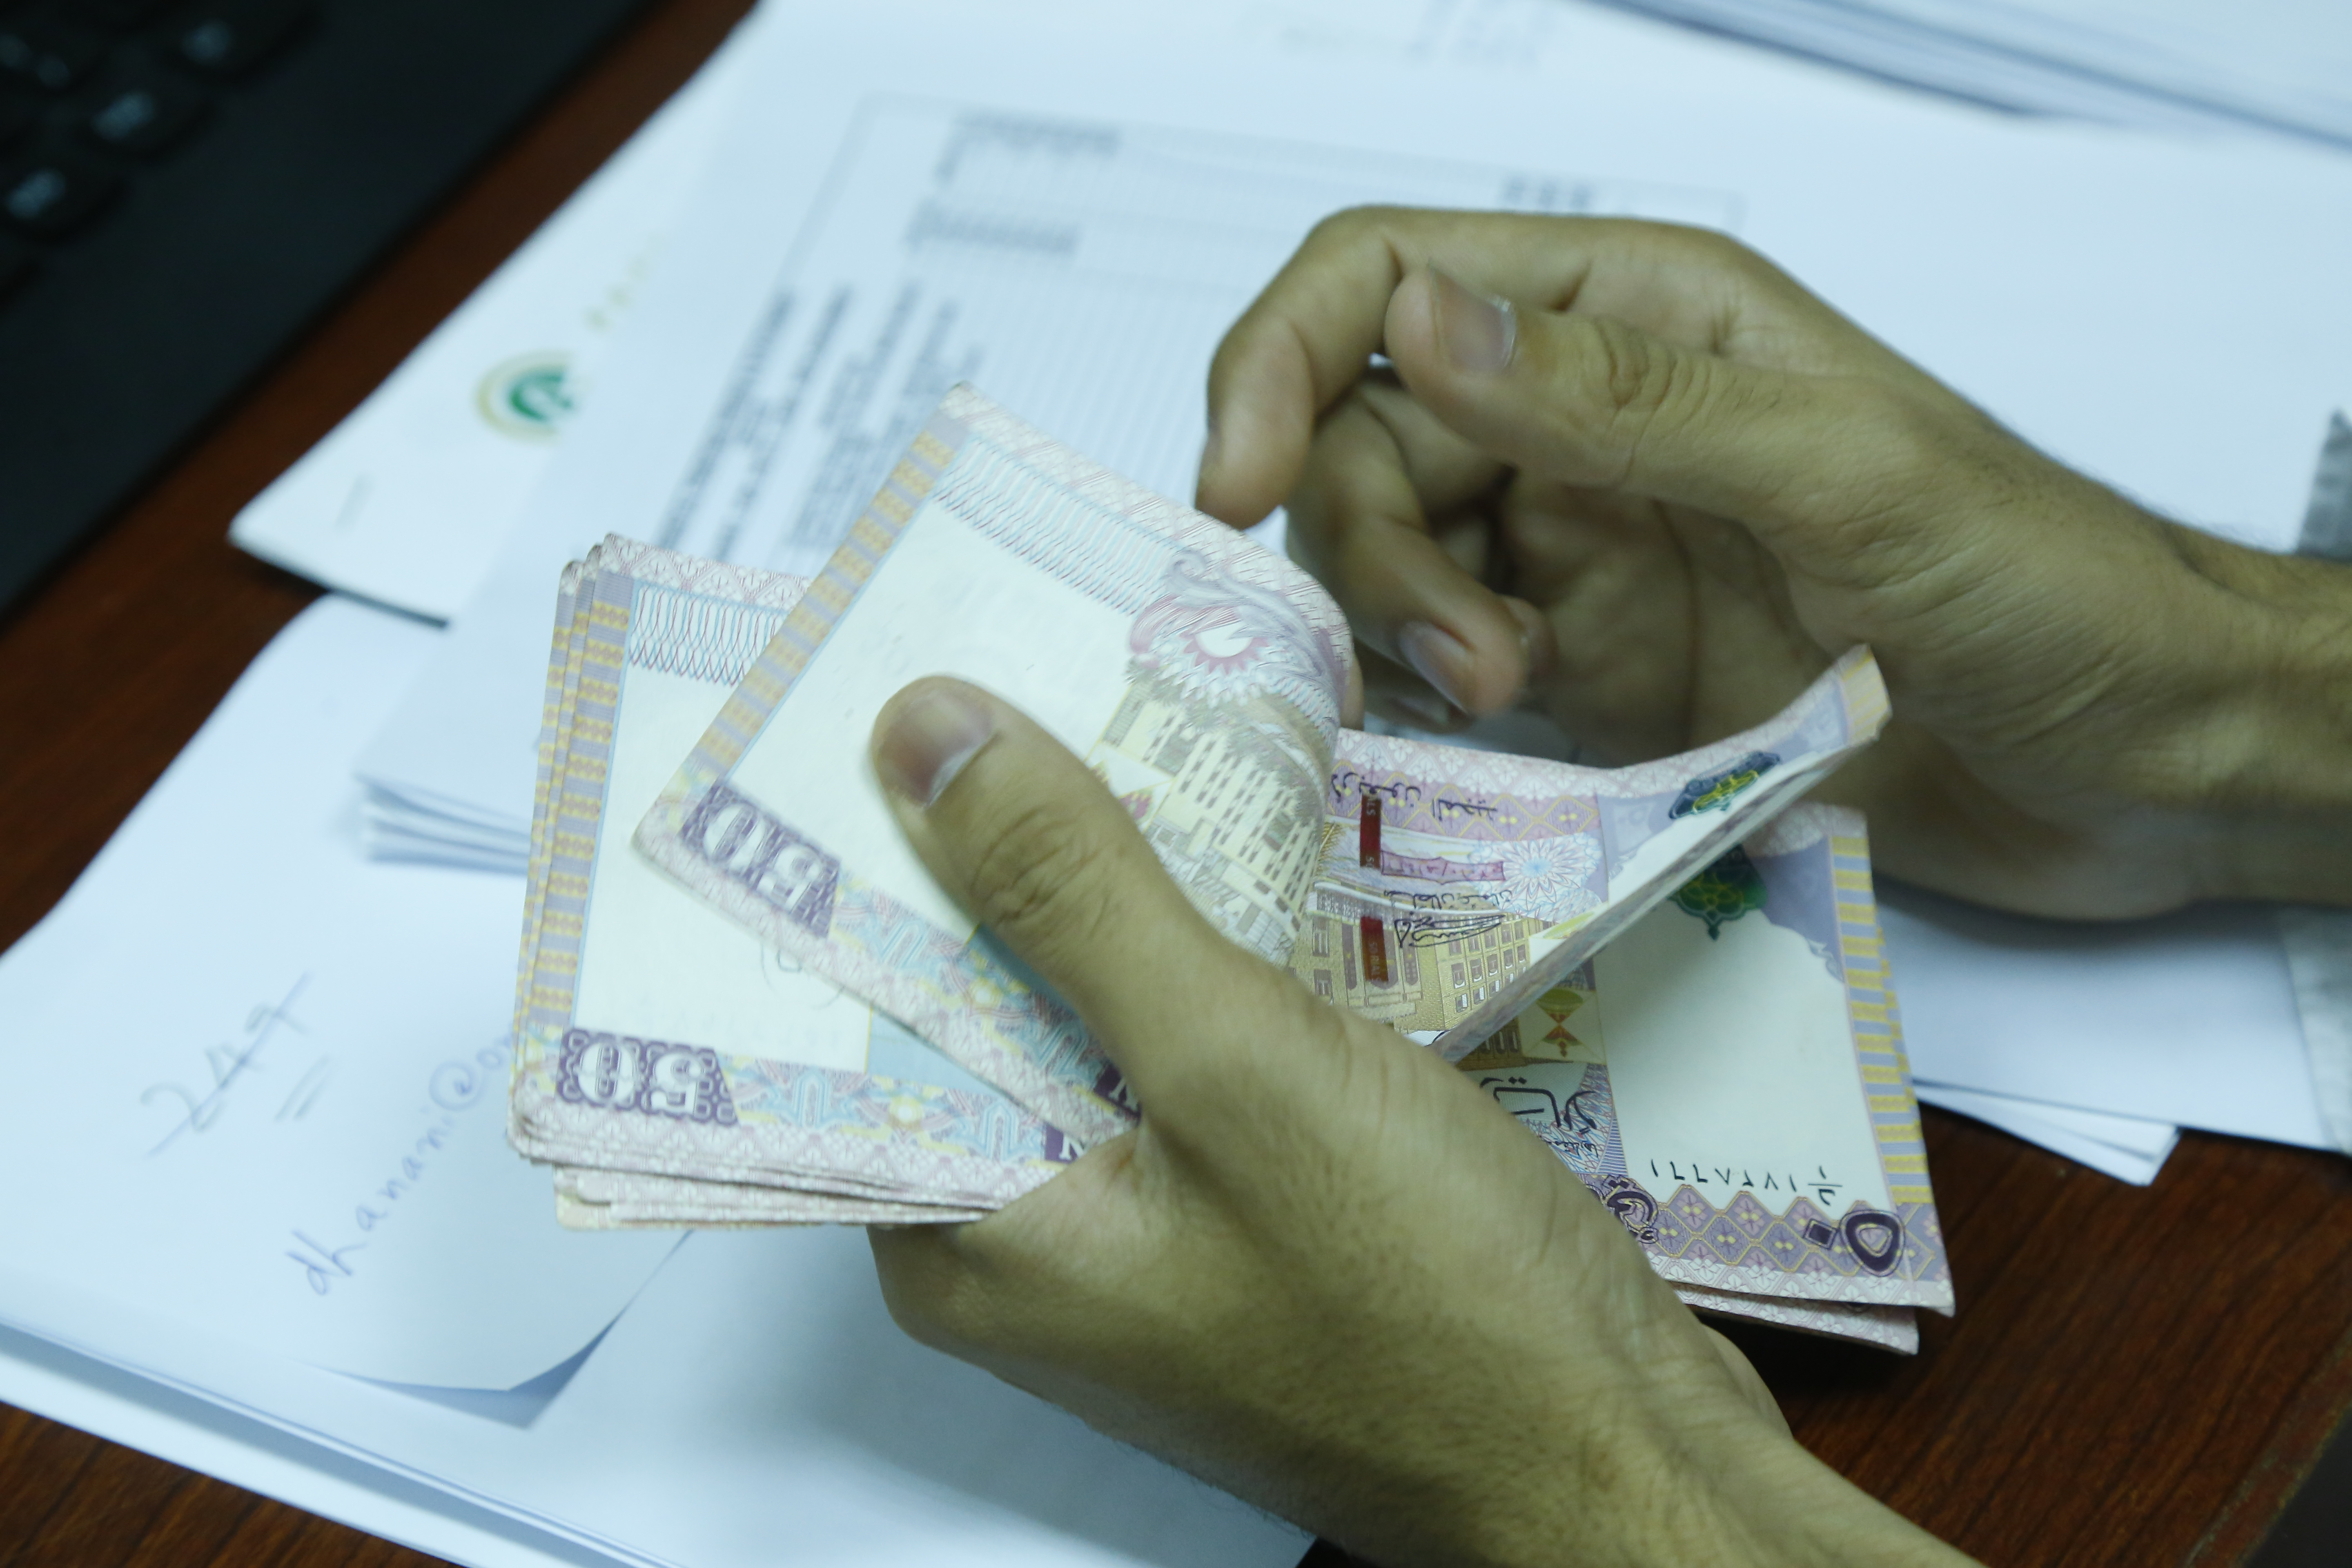 Bank interest rates in Oman rise on tight liquidity